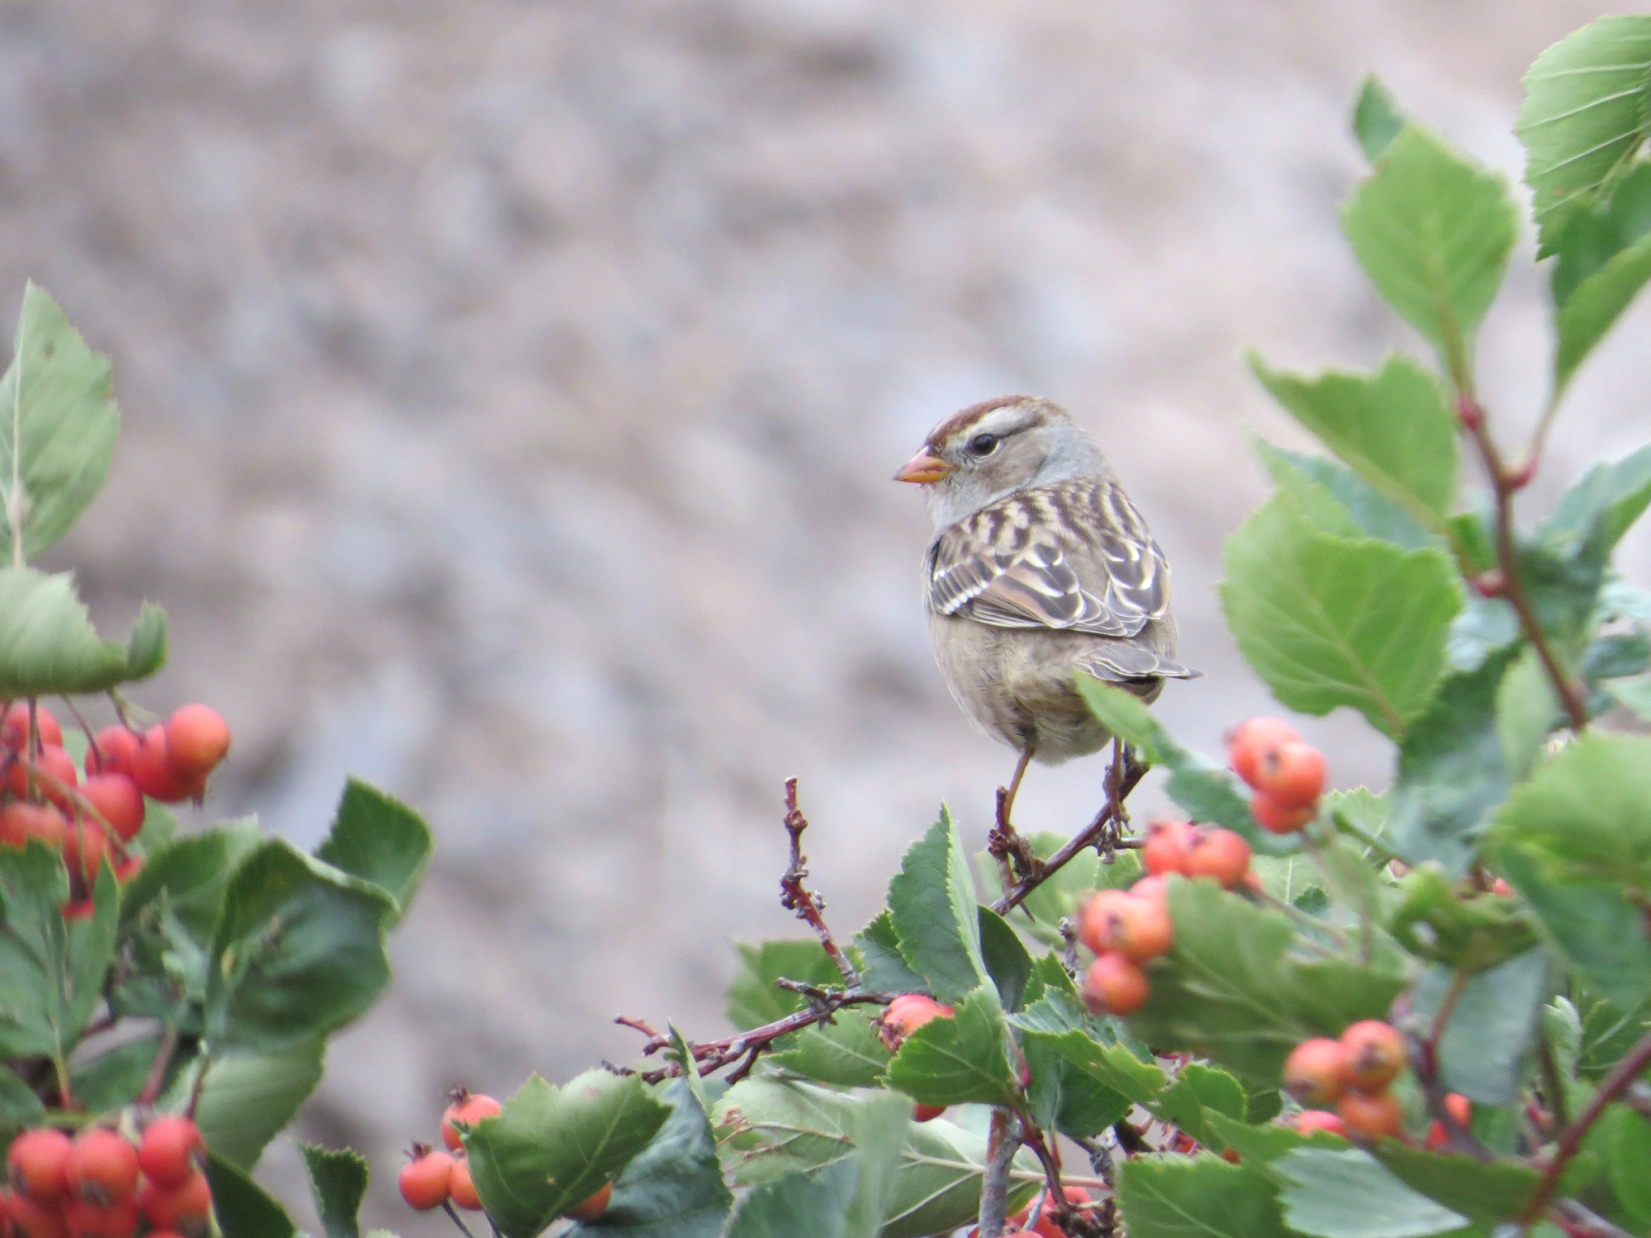 This juvenile White-crowned Sparrow was one of the first of its species we detected during this fall migration. We just started seeing adult White-crowned Sparrows this week.